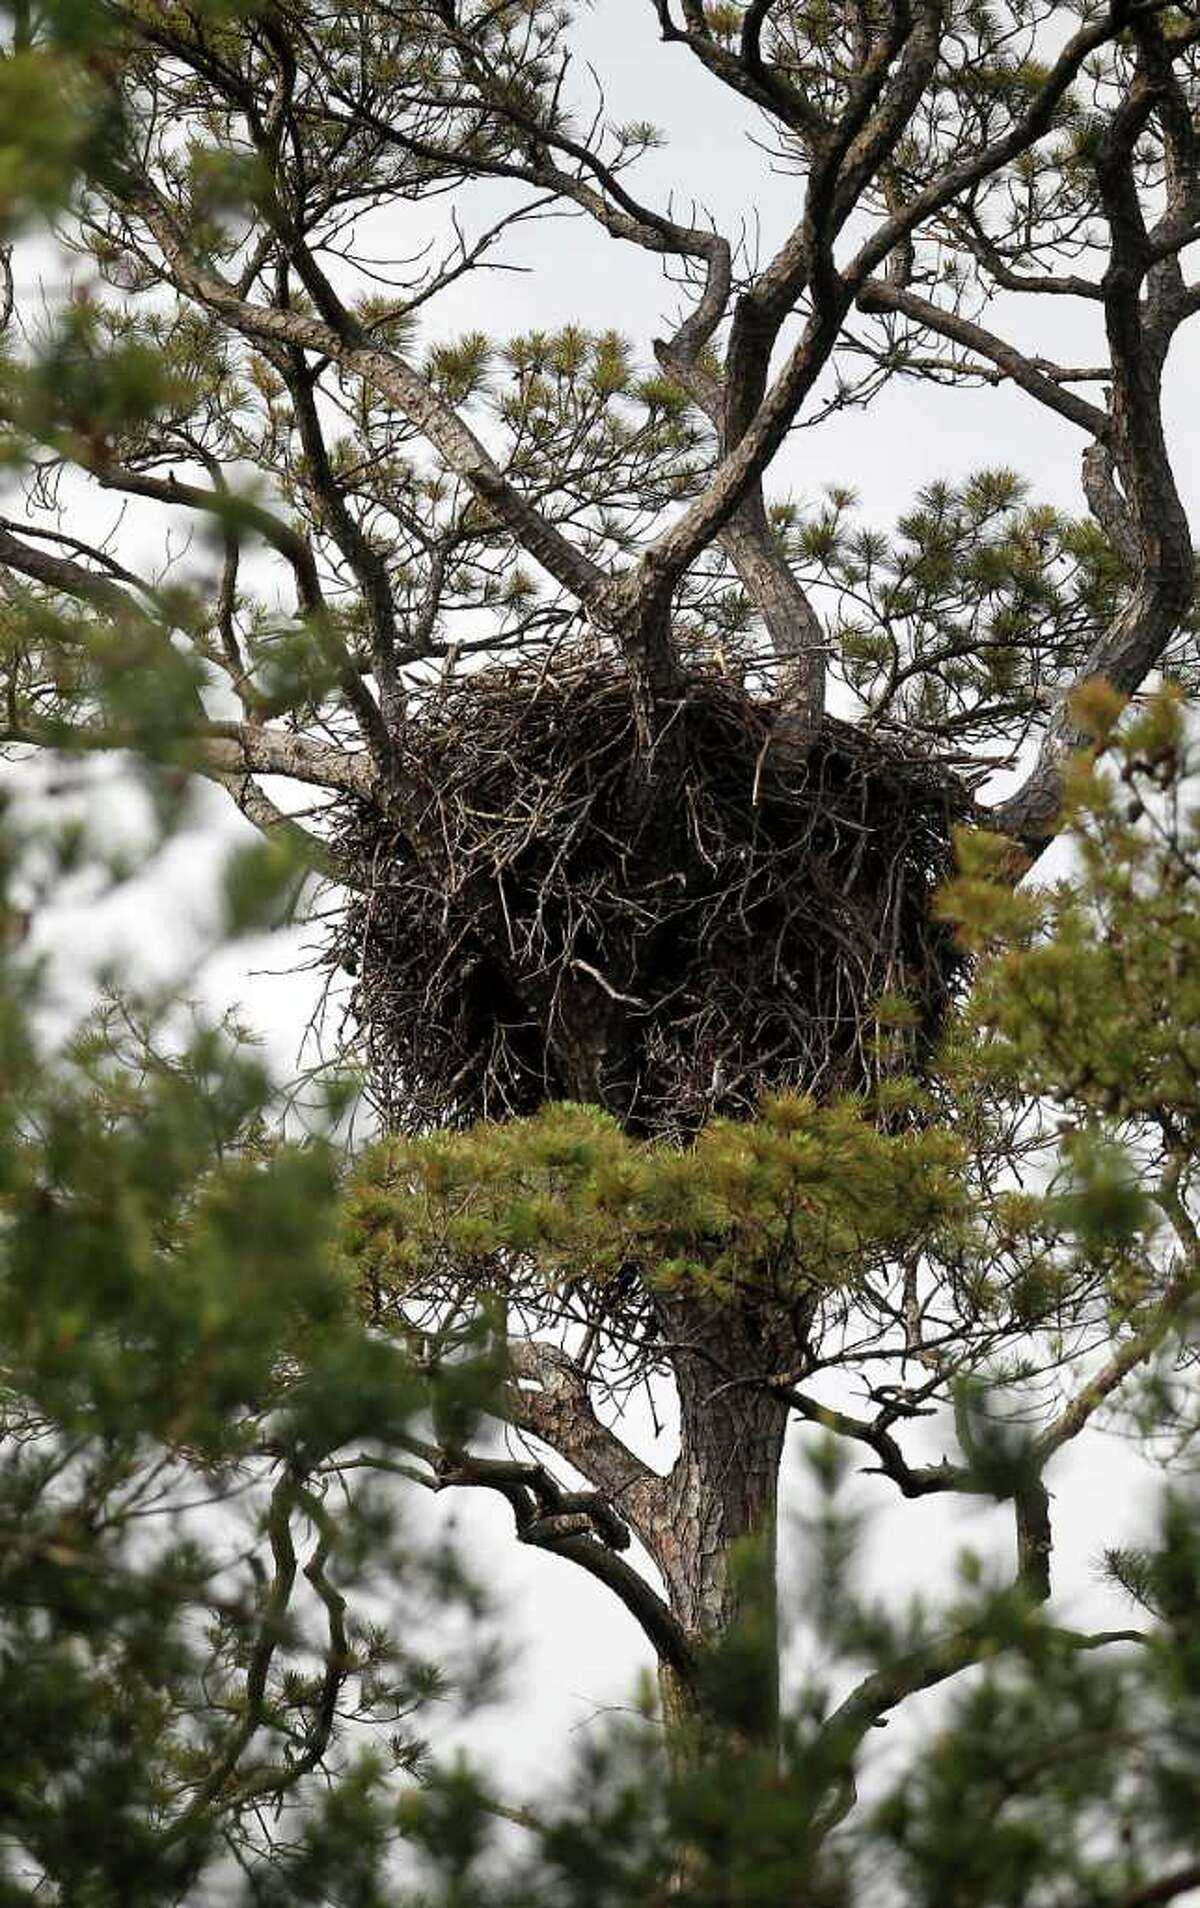 Responding to the deaths of bald eagles, CenterPoint Energy installed